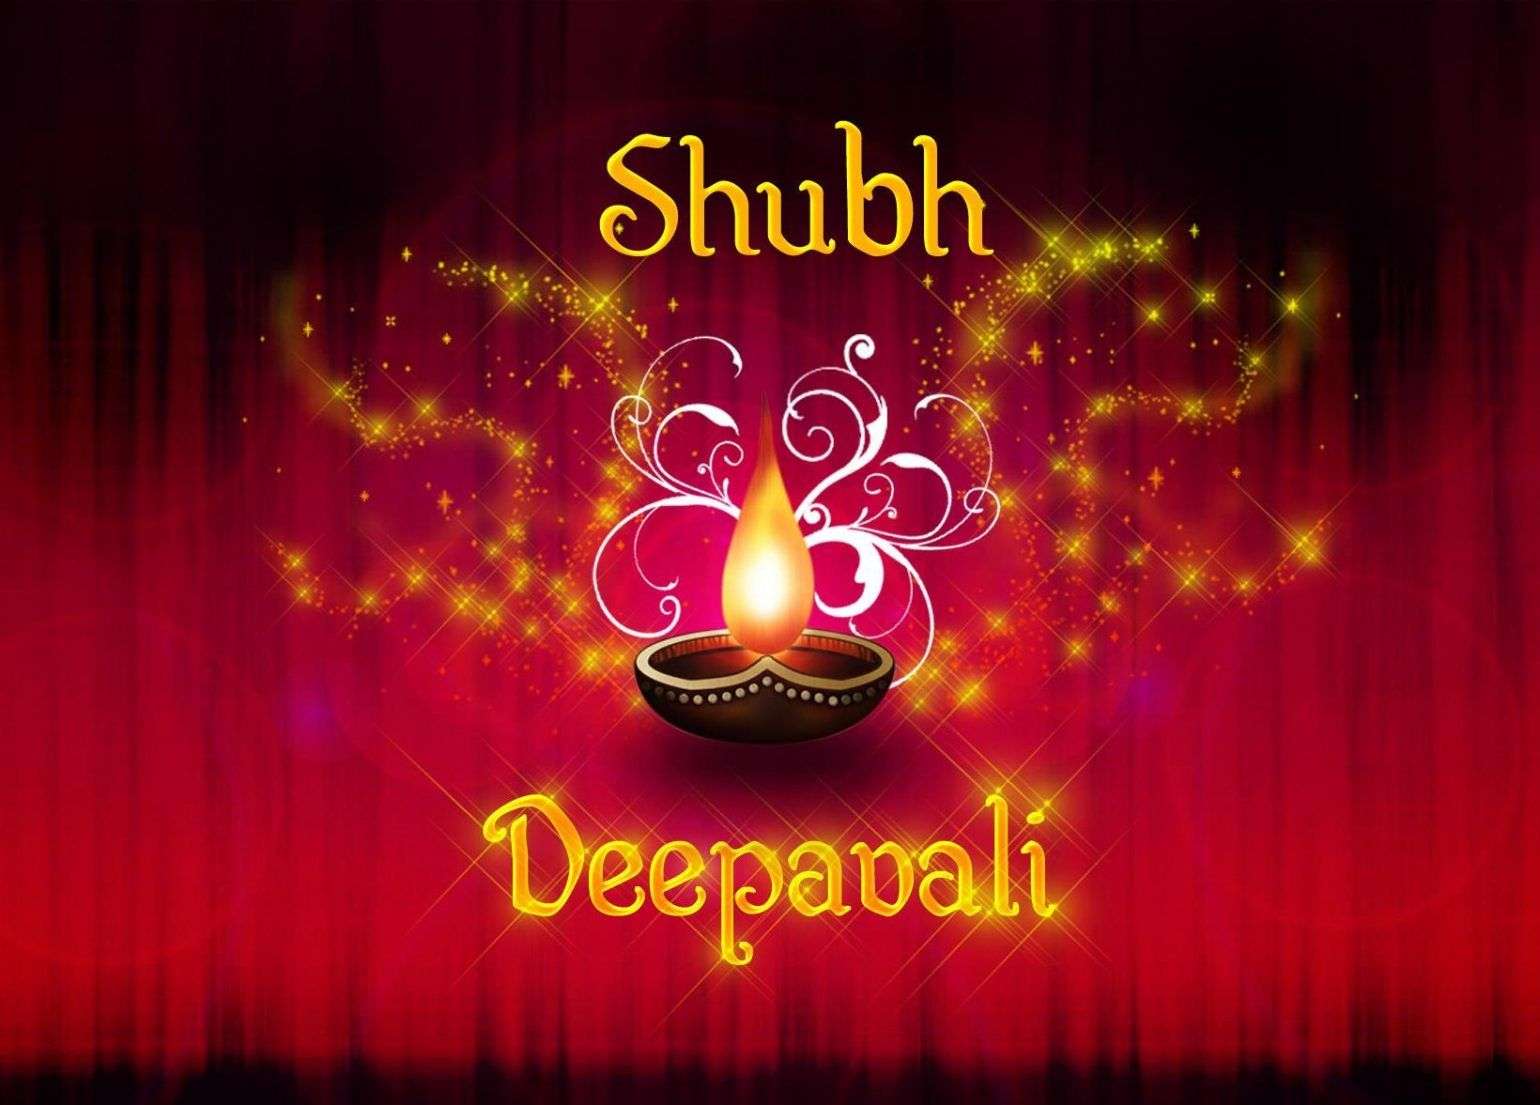 Happy diwali hd images diwali messages 2016 pinterest diwali diwali 2015 messages 140 text msg hindi english 100 bombastic happy diwali sms messages in englishhappy diwali deepavali wishes diwali wishes kristyandbryce Gallery